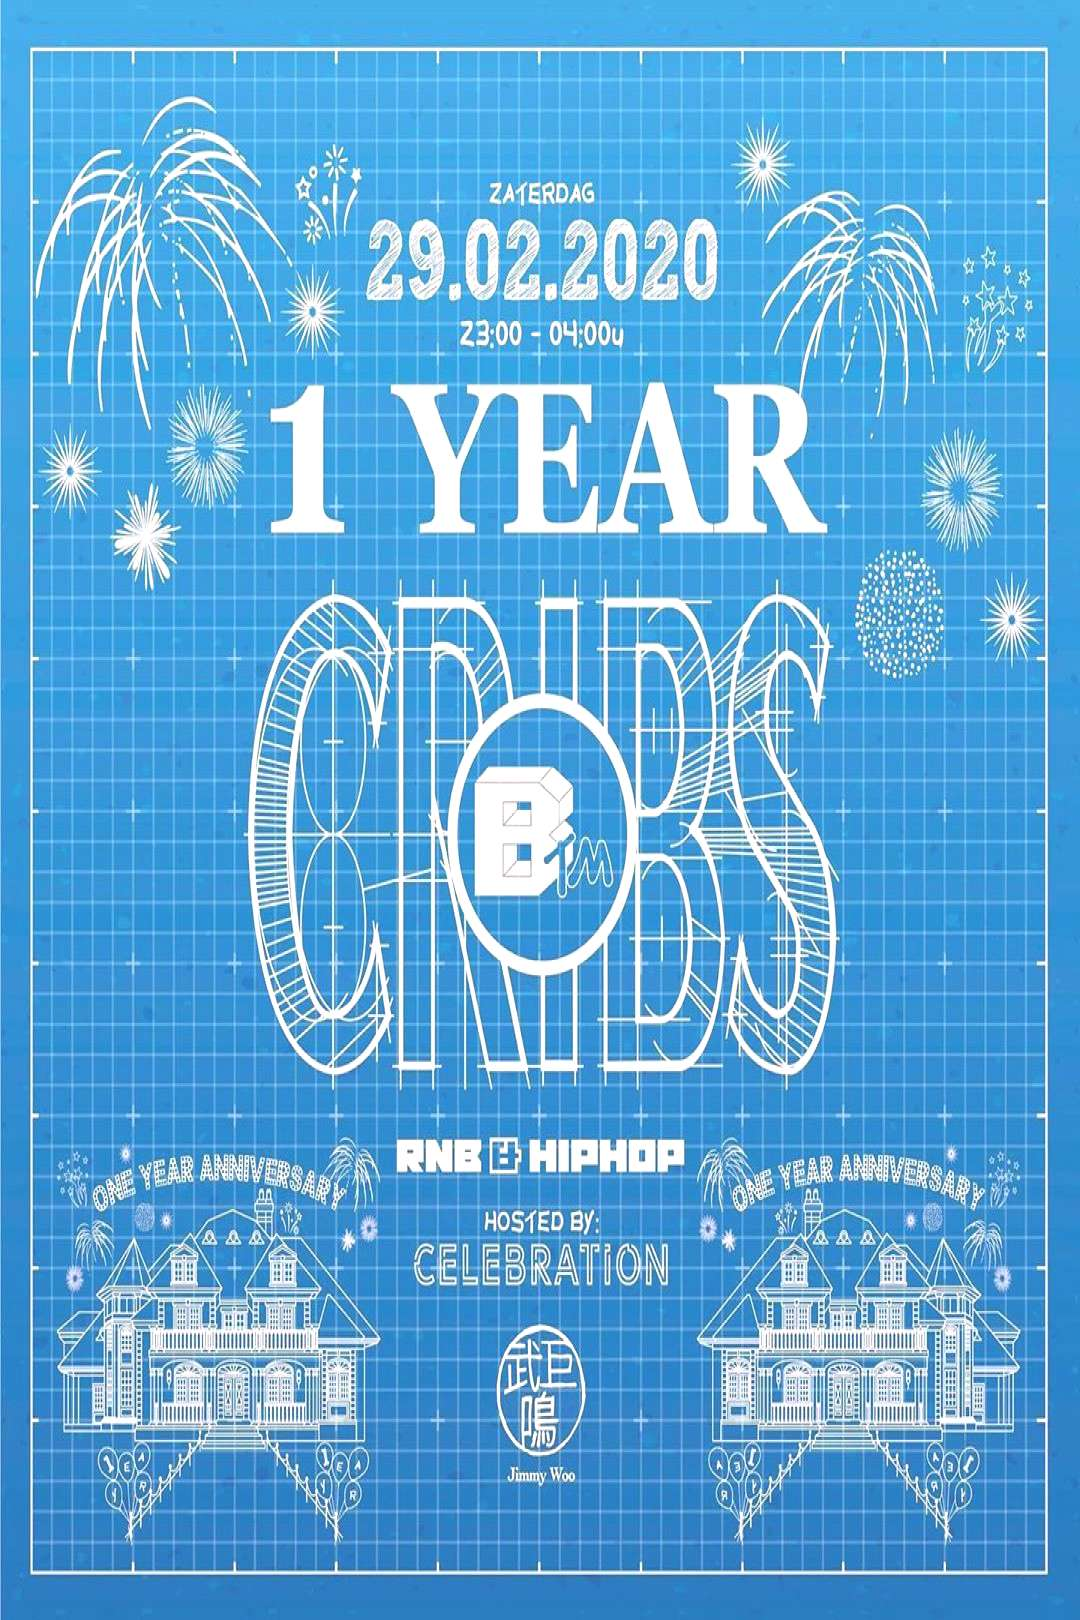 ONE YEAR ANNIVERSARY THIS SATURDAY MAKE SURE TO COME AND CELEBRAT